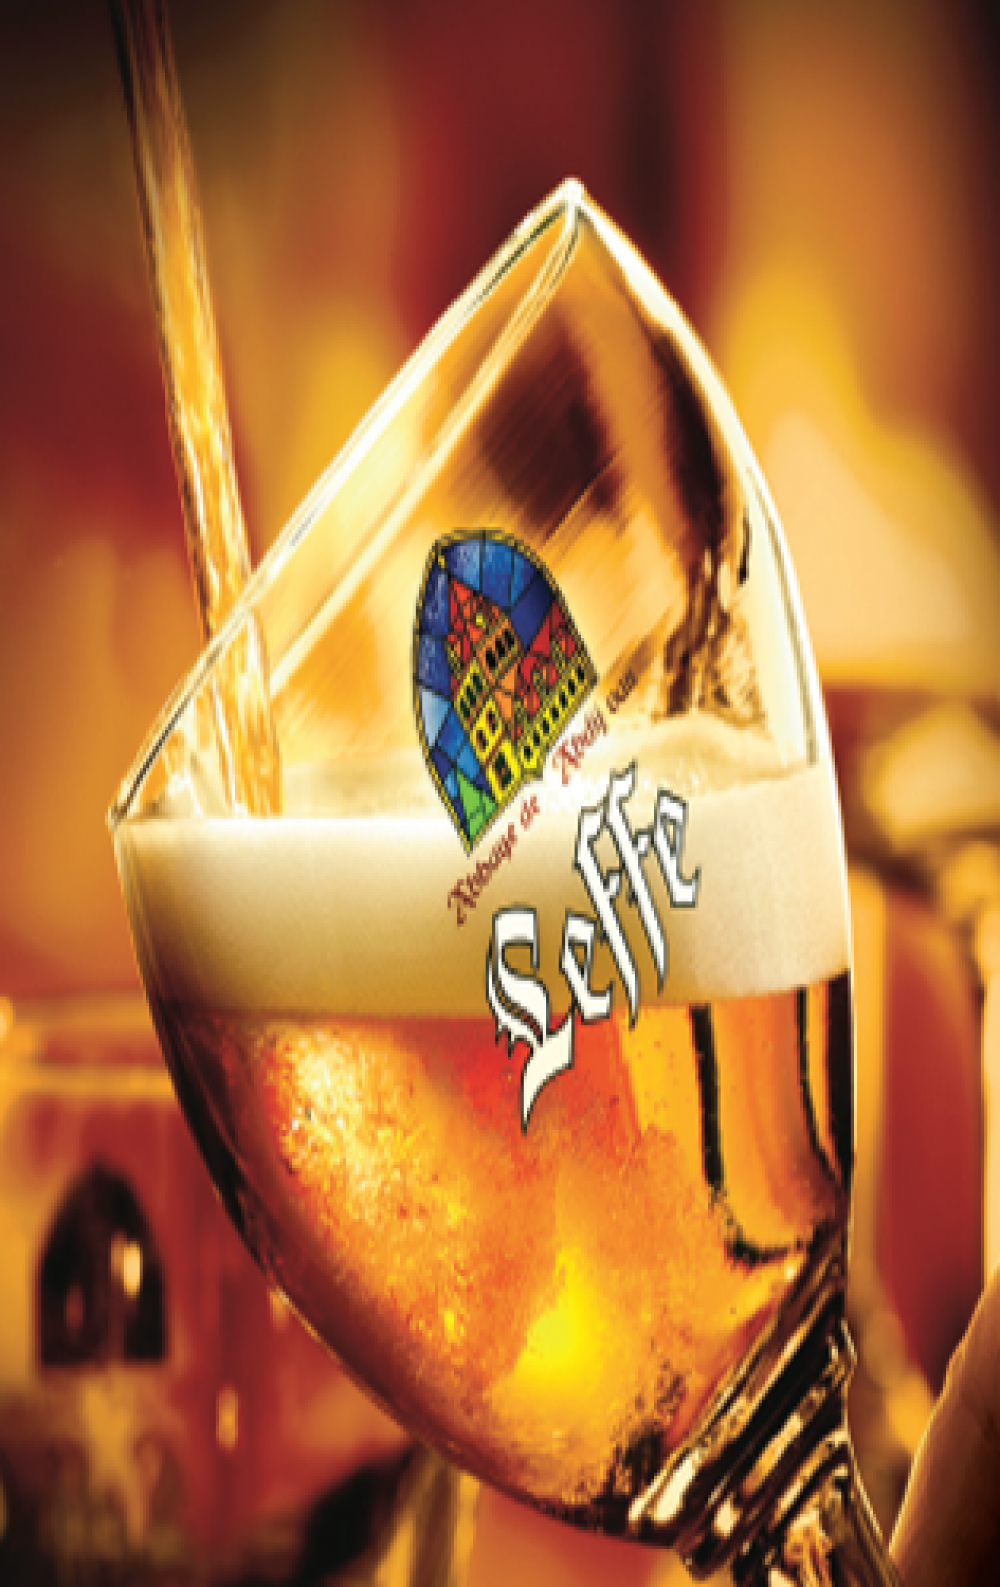 GSD Marketing Ltd enhances its beer portfolio with Leffe and Hoegaarden